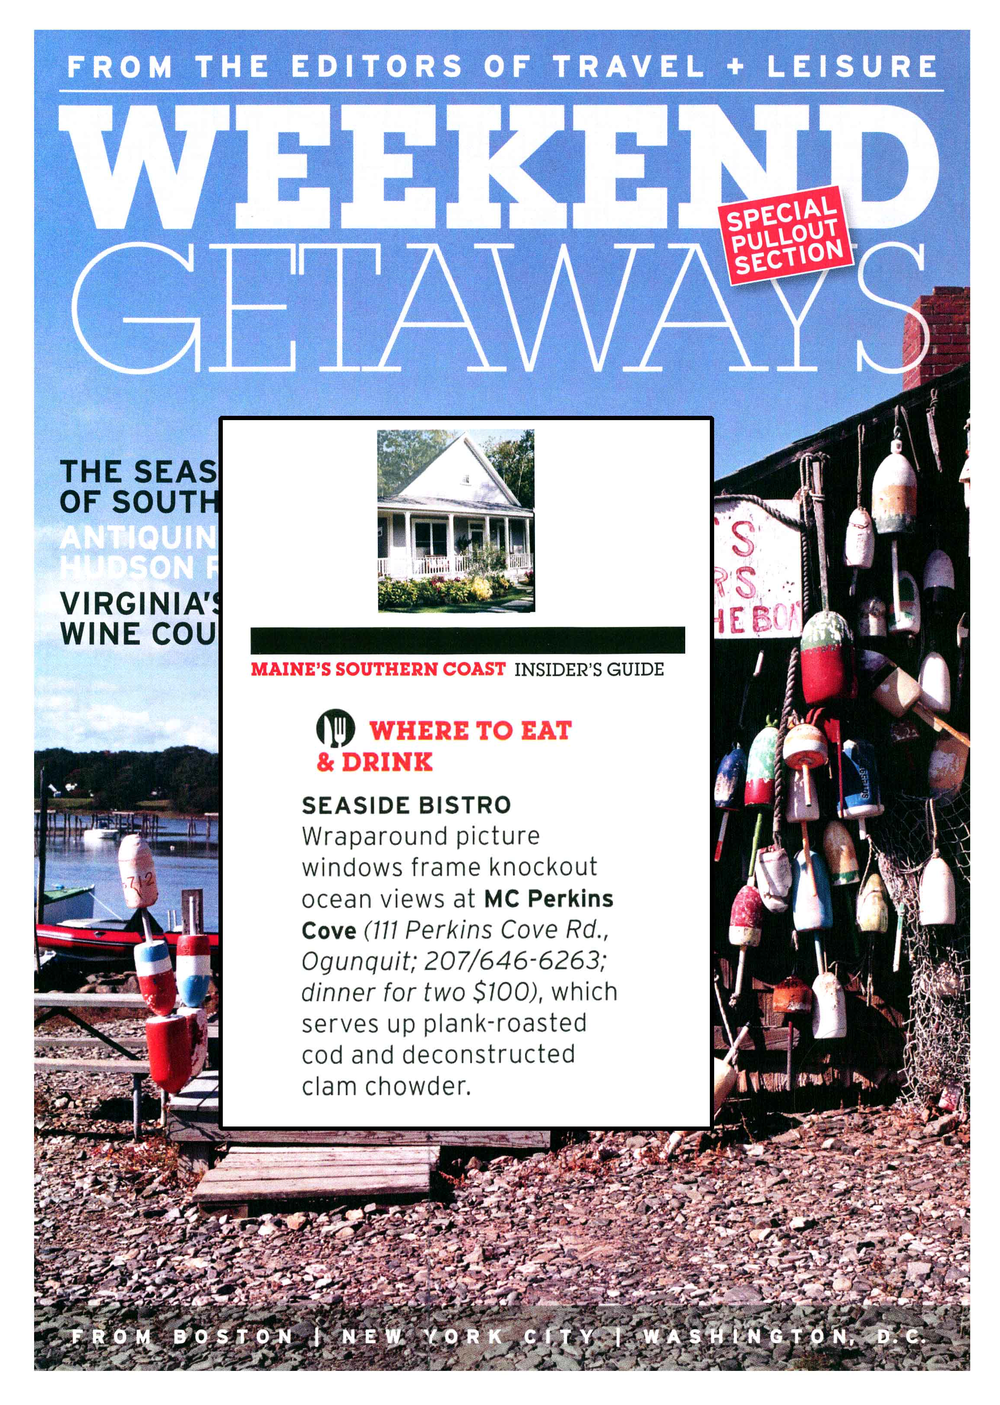 Travel & Leisure, Getaways, Mark Gaier, Clark Frasier, MC Perkins Cove